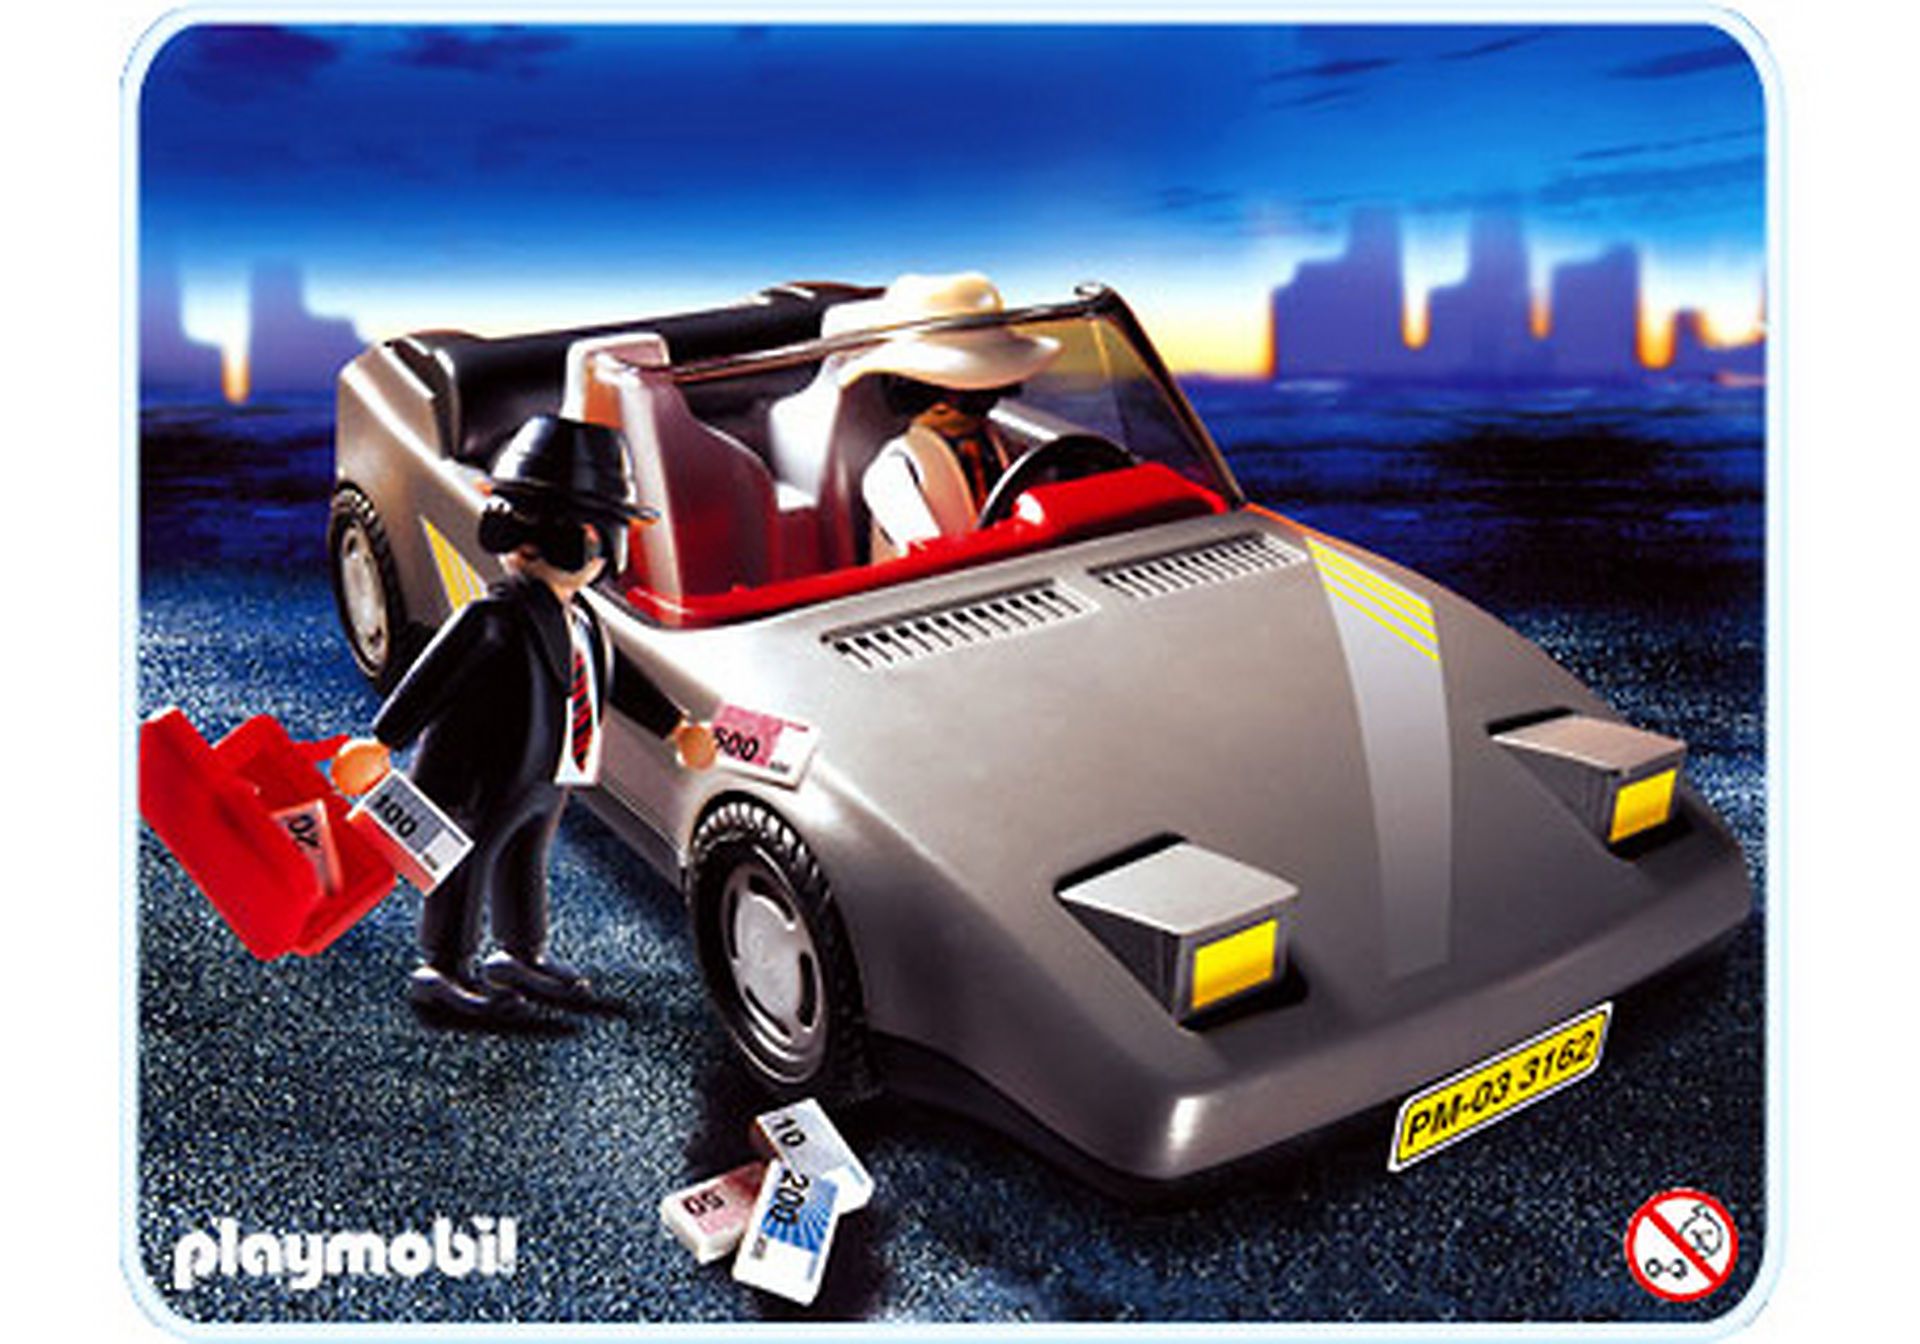 http://media.playmobil.com/i/playmobil/3162-A_product_detail/Fluchtfahrzeug/Gangster